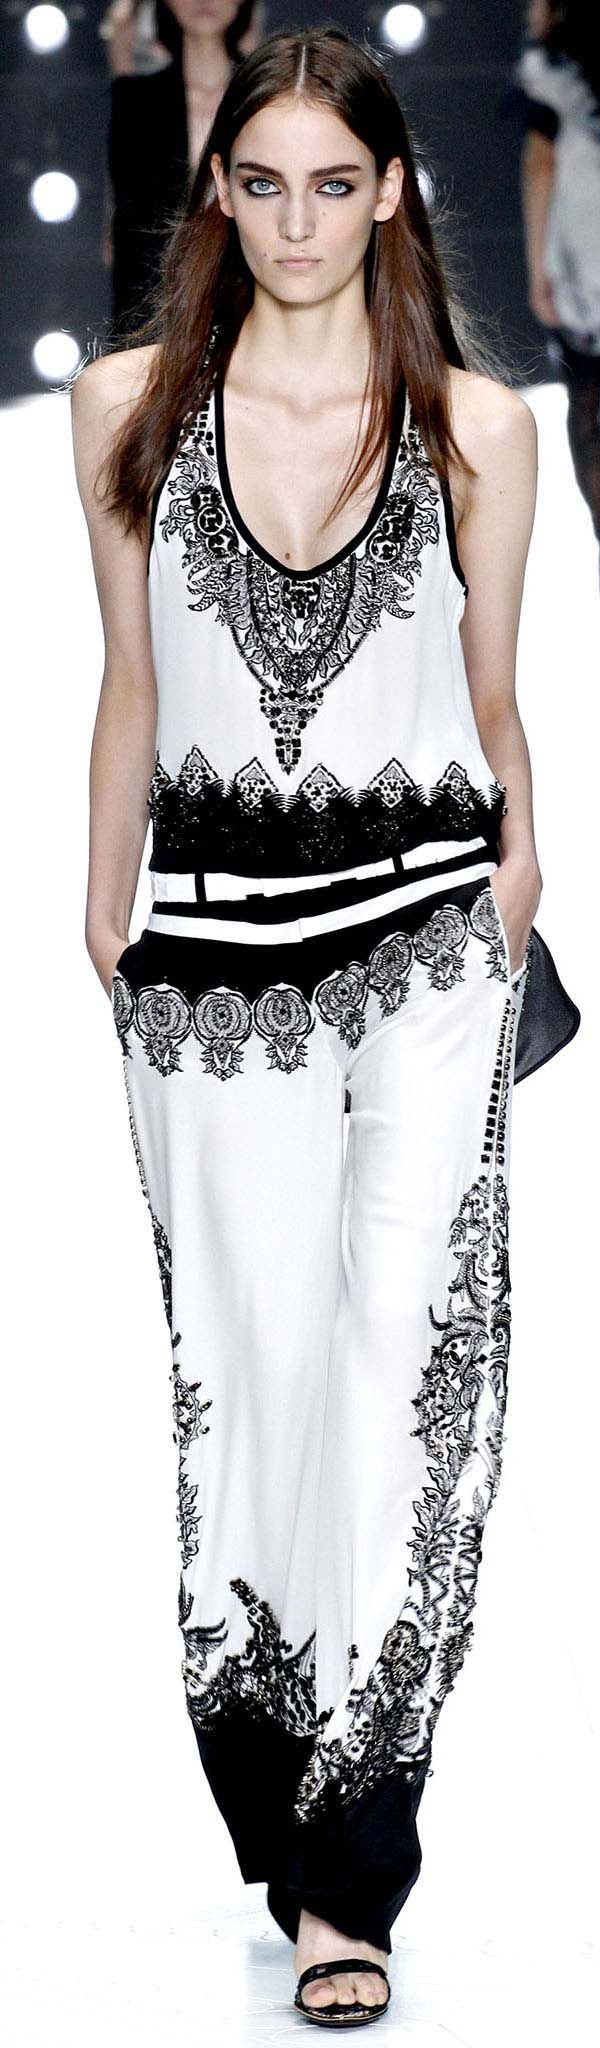 #Roberto Cavalli Spring Summer 2013 Ready-To-Wear Collection #Trend Black & White